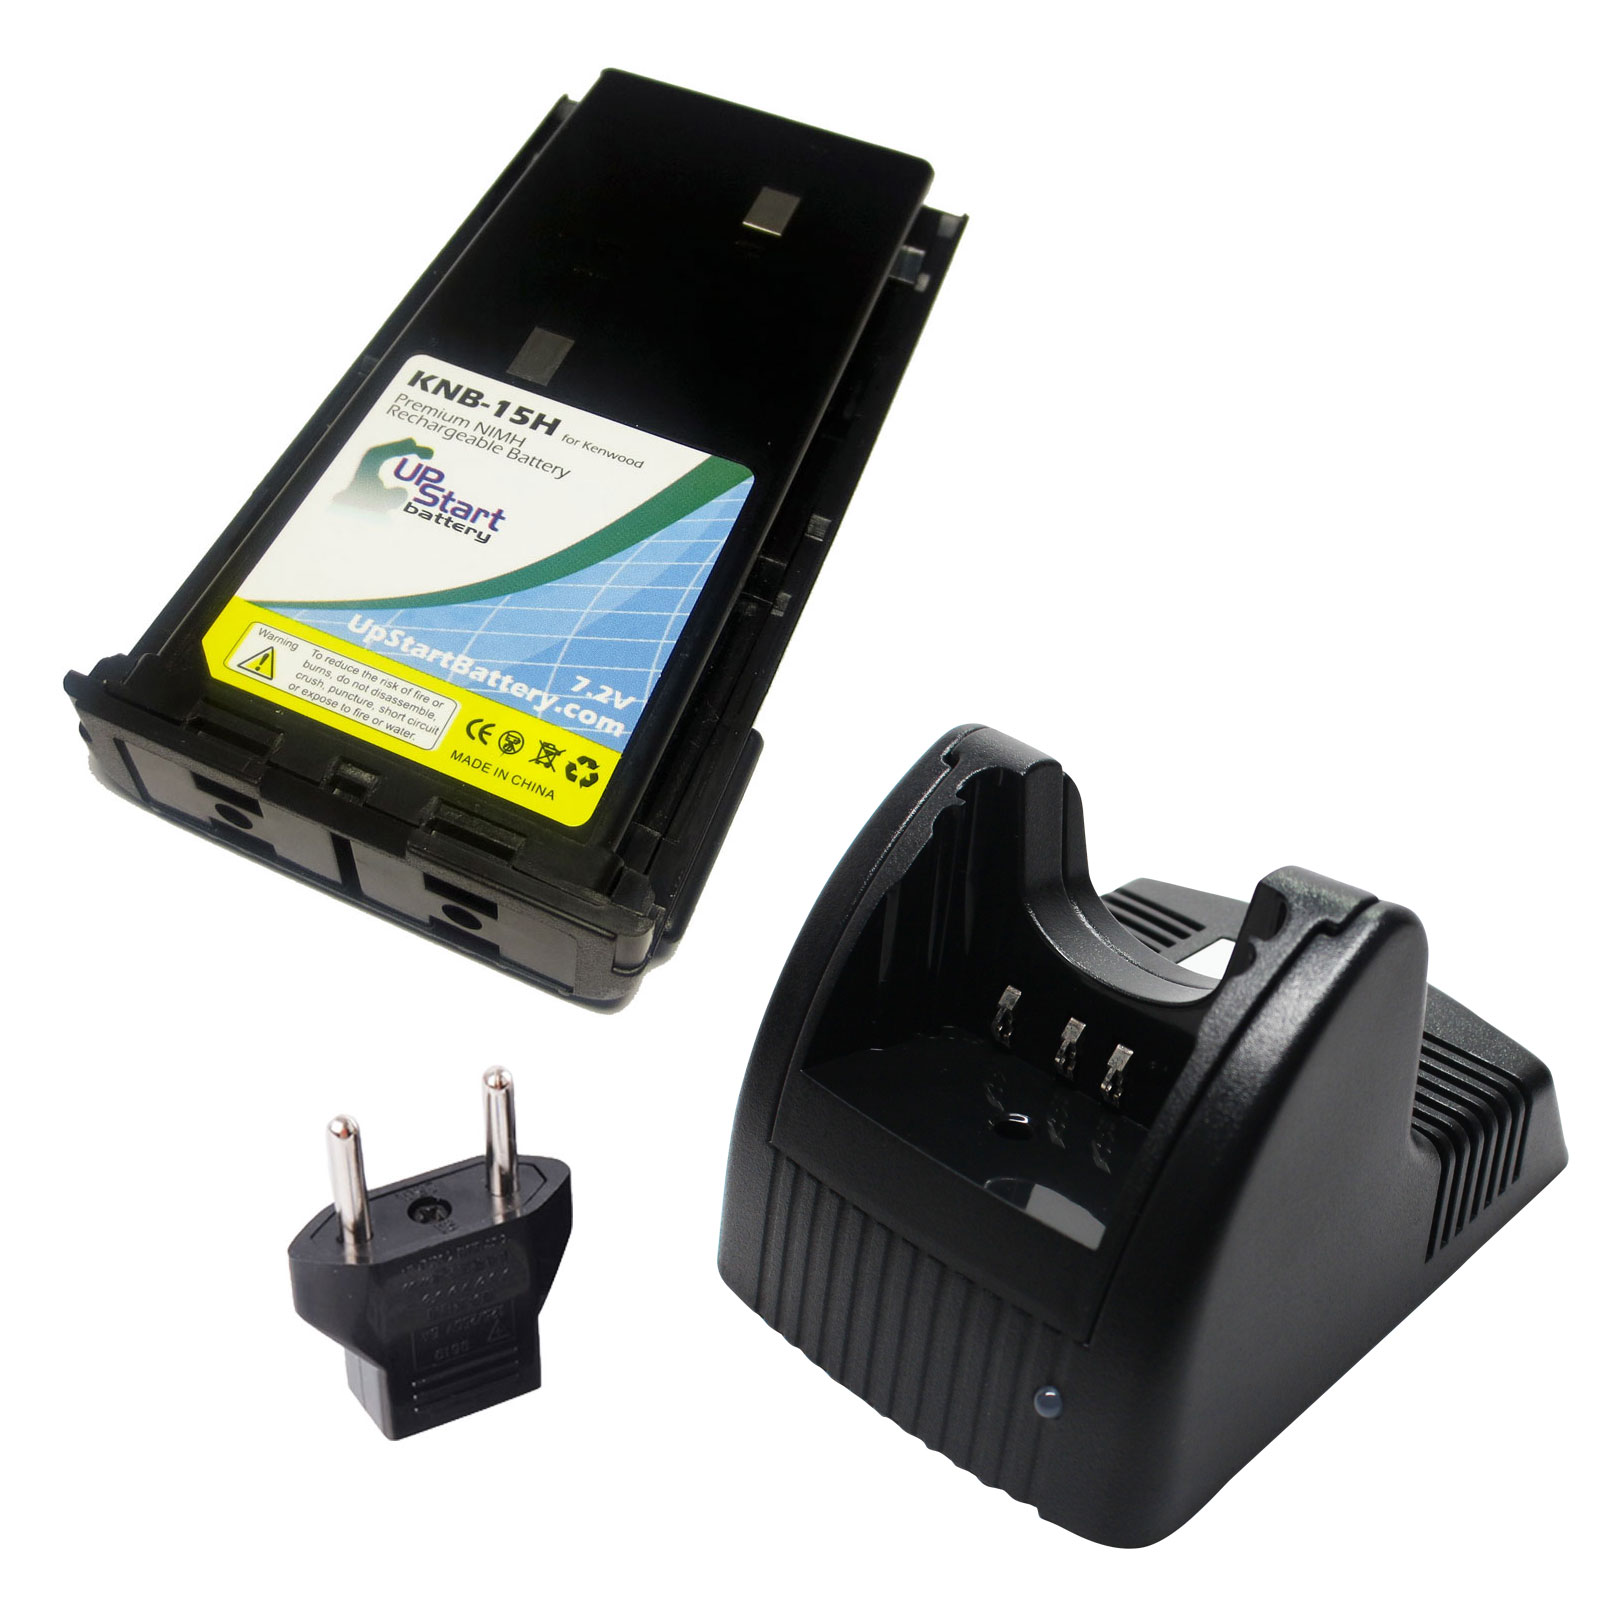 UpStart Battery Kenwood TK-372G Battery and Charger with EU Adapter - Replacement for Kenwood KNB-14, KNB-15 Radio Batteries and Chargers at Sears.com